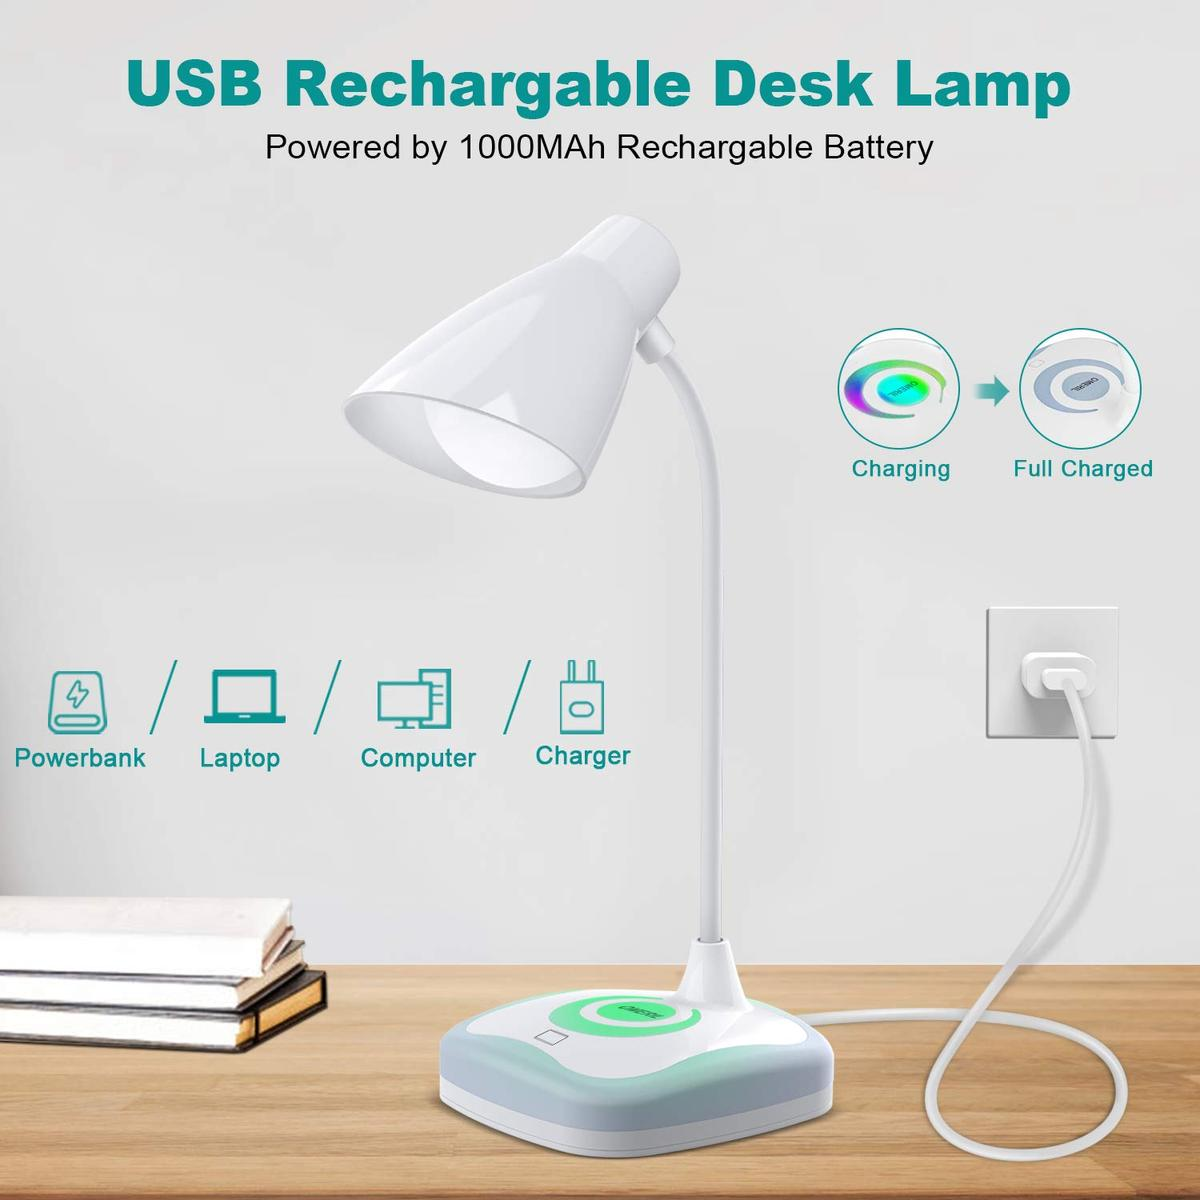 LED Desk Lamp Bedroom Office 3 Levels Brightness Energy-Saving Portable Reading Book Light for Study etc OMERIL 5W USB Rechargeable Reading Light with Mood Light on Base Touch Sensor Control